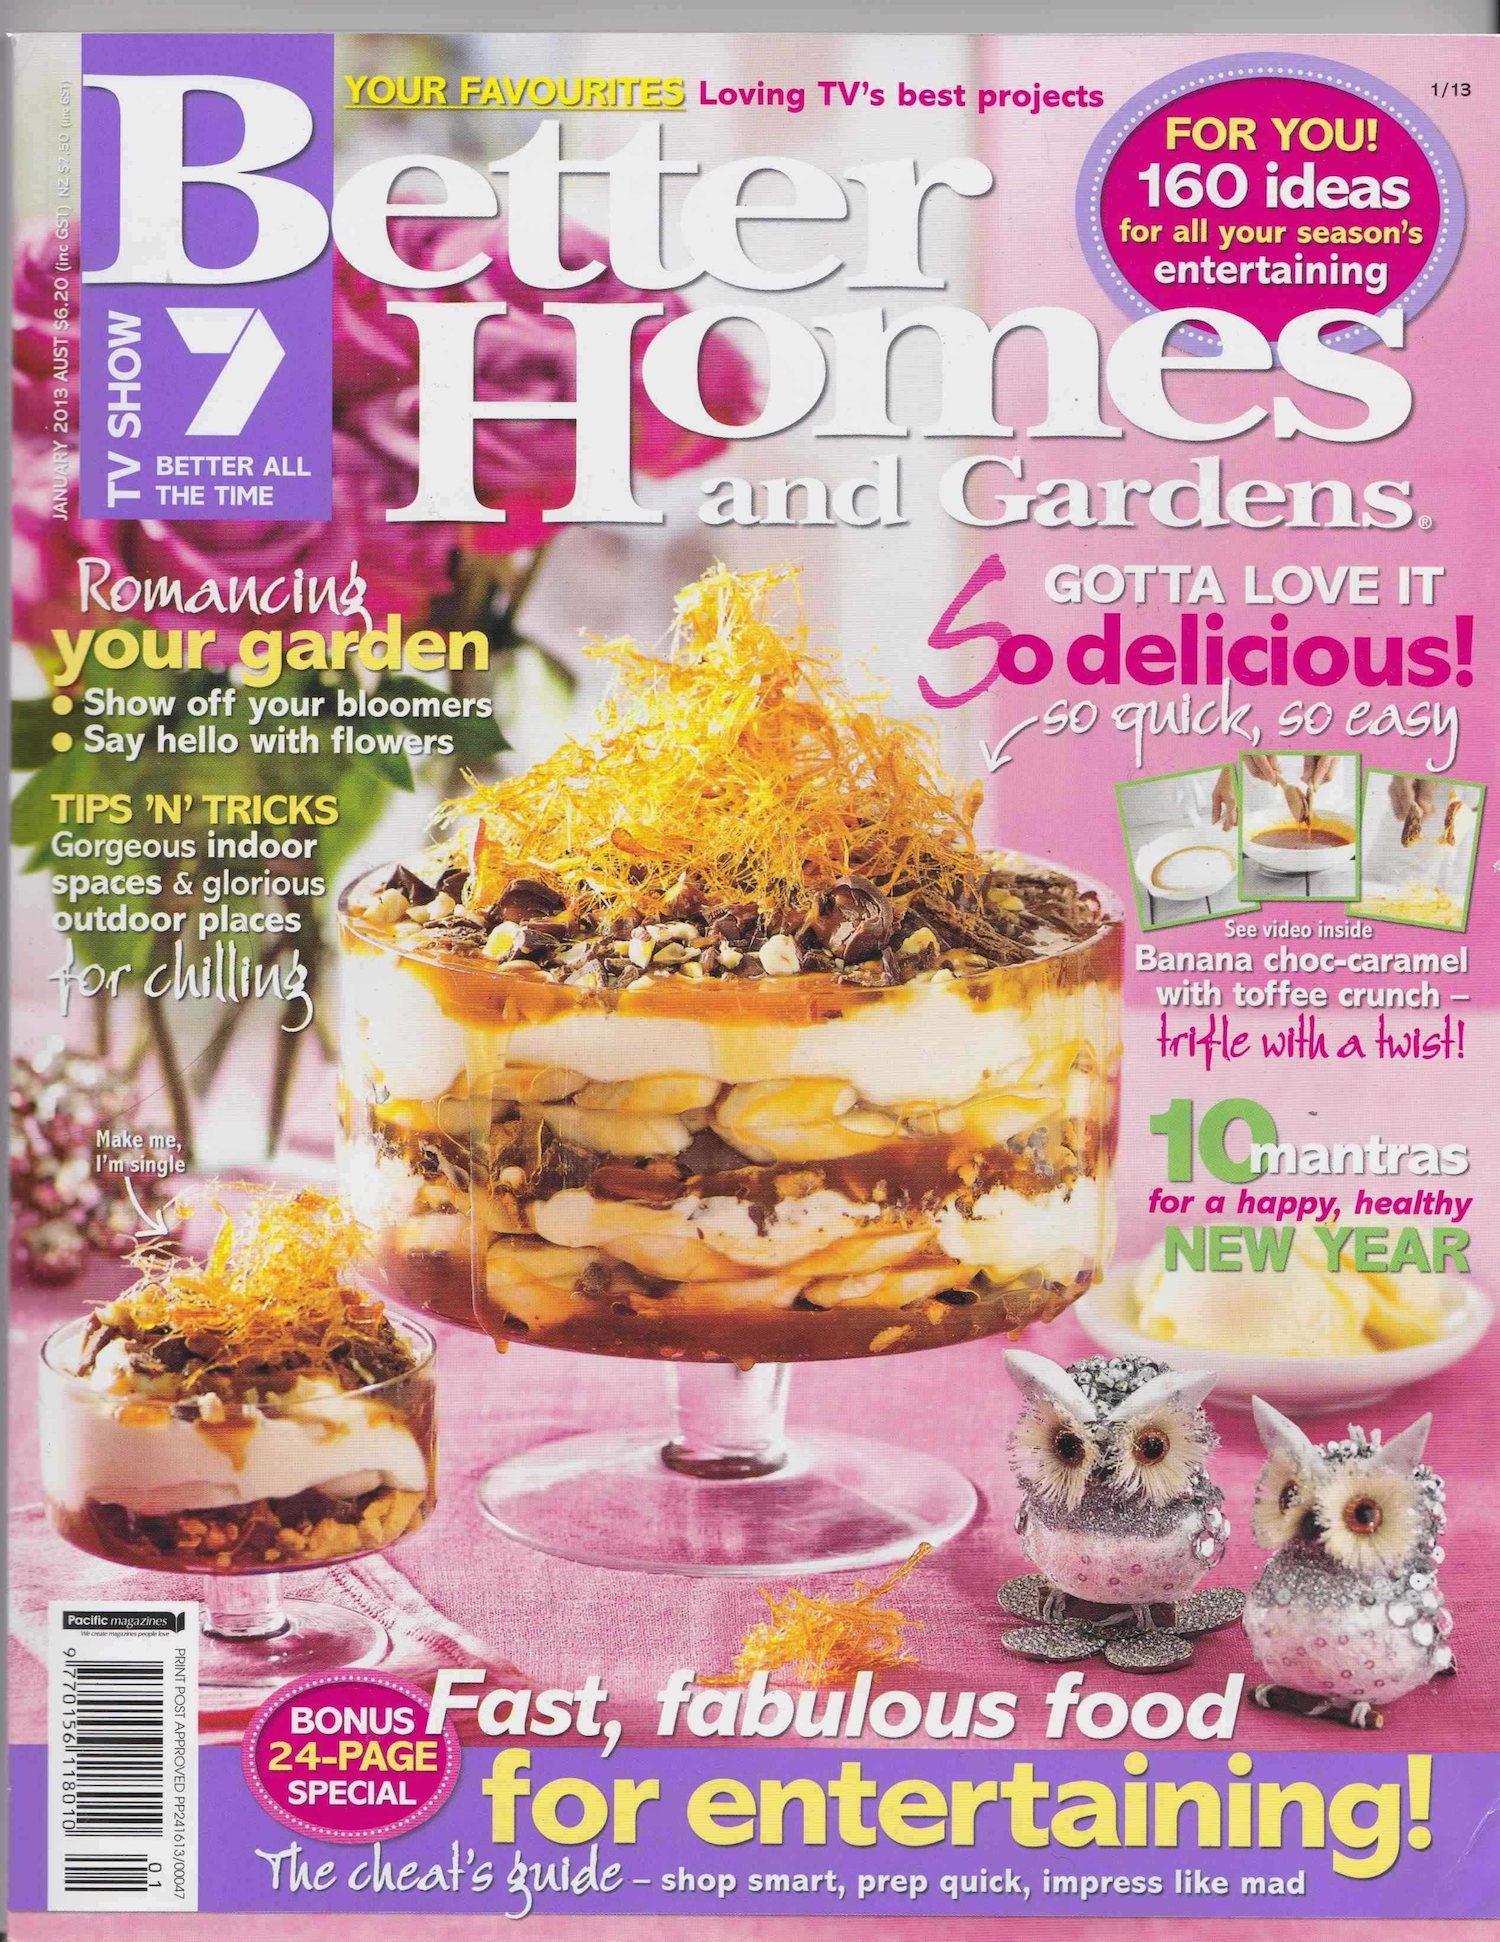 Furniture In Better Homes And Gardens Magazine January: better homes and gardens christmas special